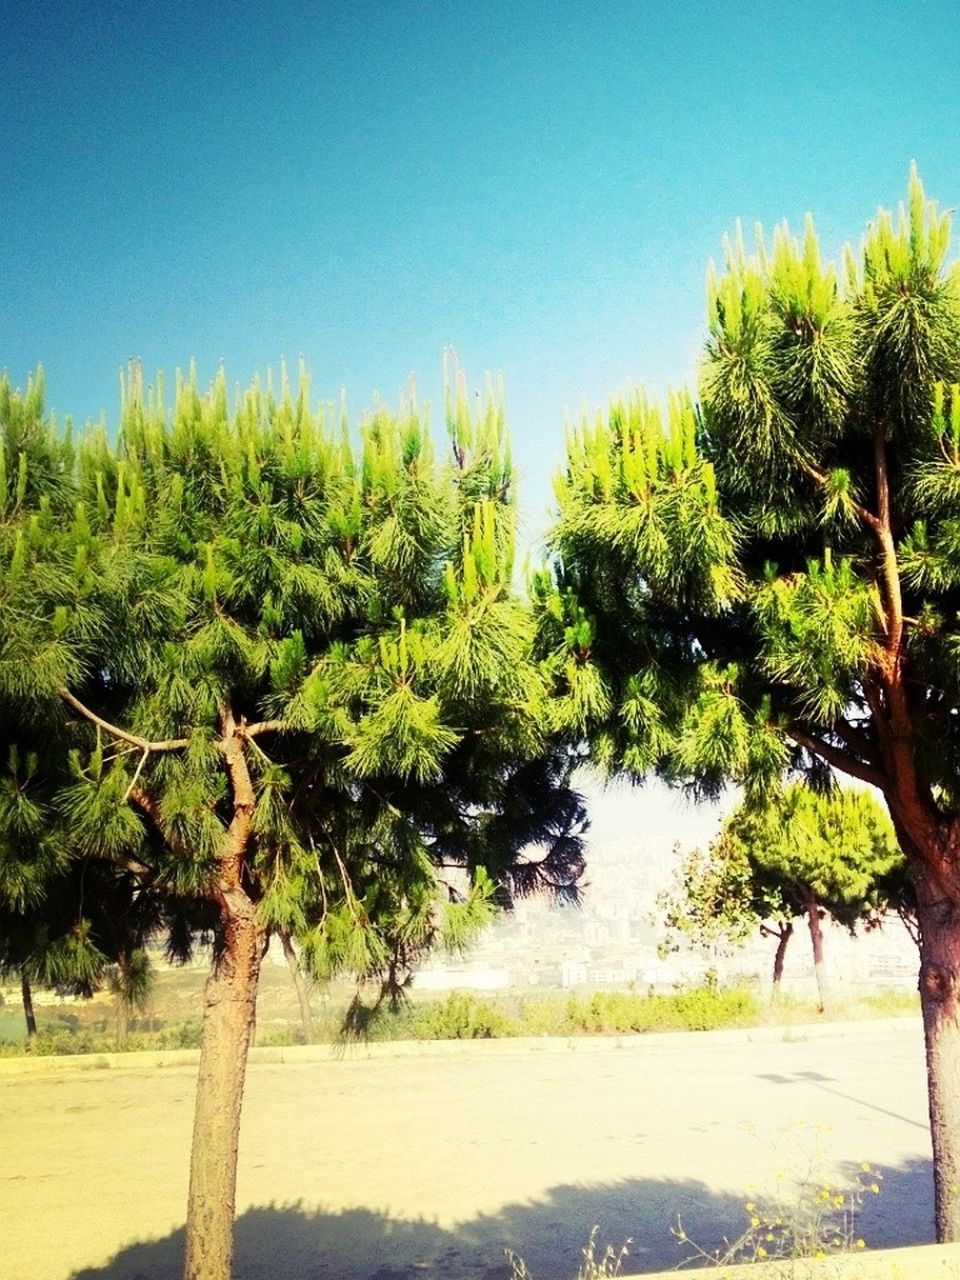 tree, palm tree, growth, nature, clear sky, tranquility, day, beauty in nature, scenics, no people, outdoors, green color, landscape, tranquil scene, sky, plant